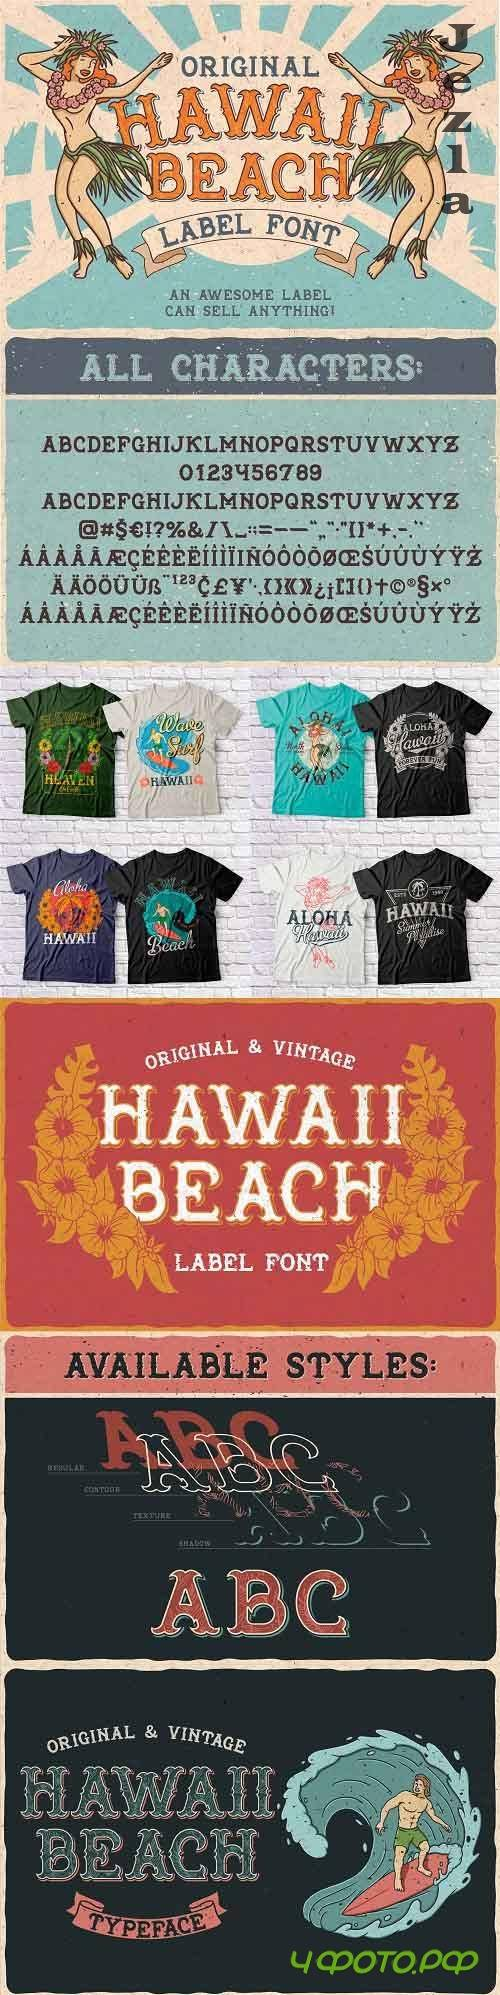 Hawaii Beach. Font & T-shirts - 24658585 - 4101621